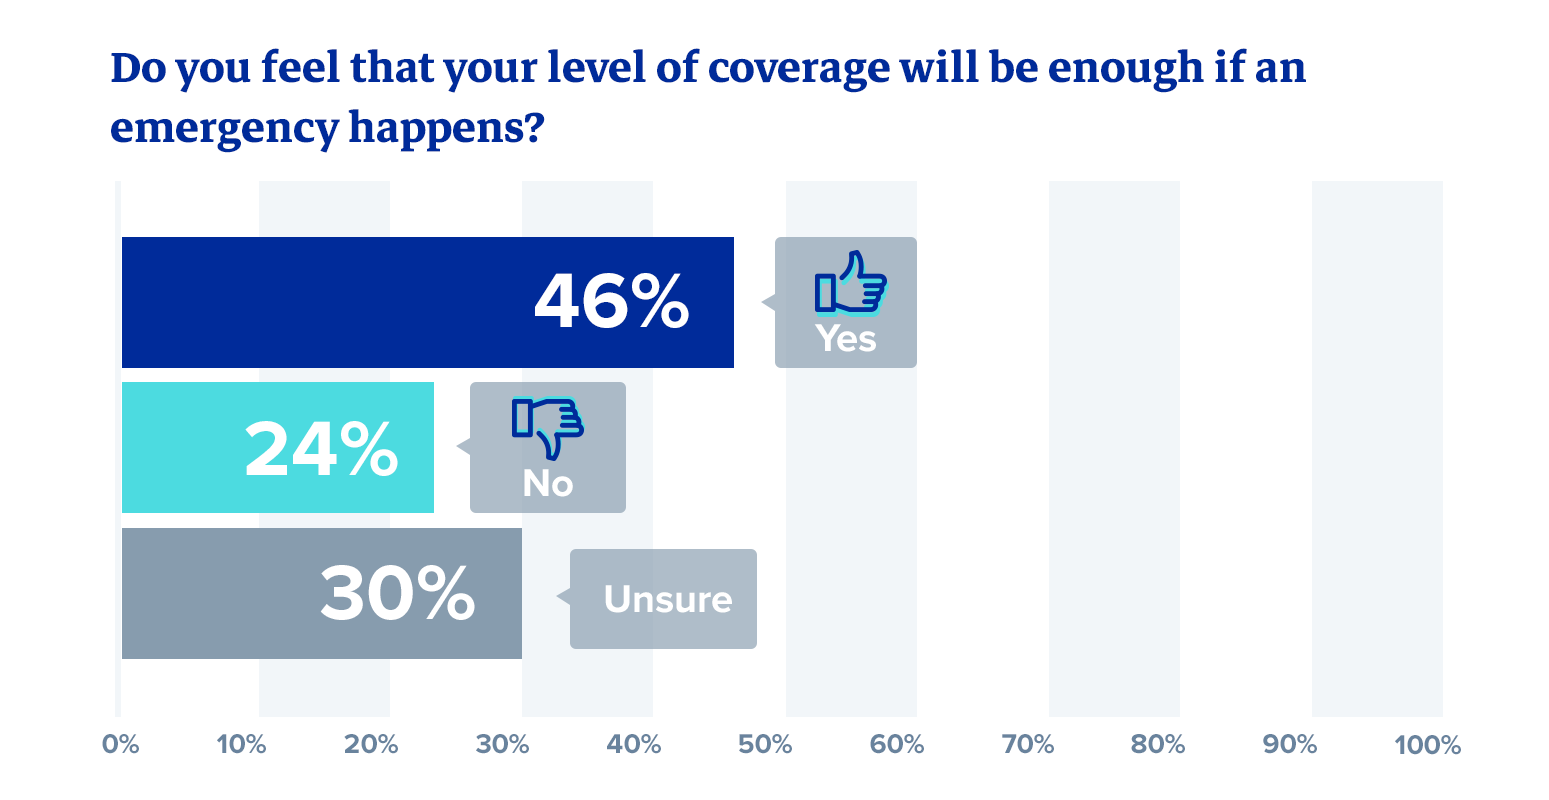 Do you feel that your level of coverage will be enough if an emergency happens?